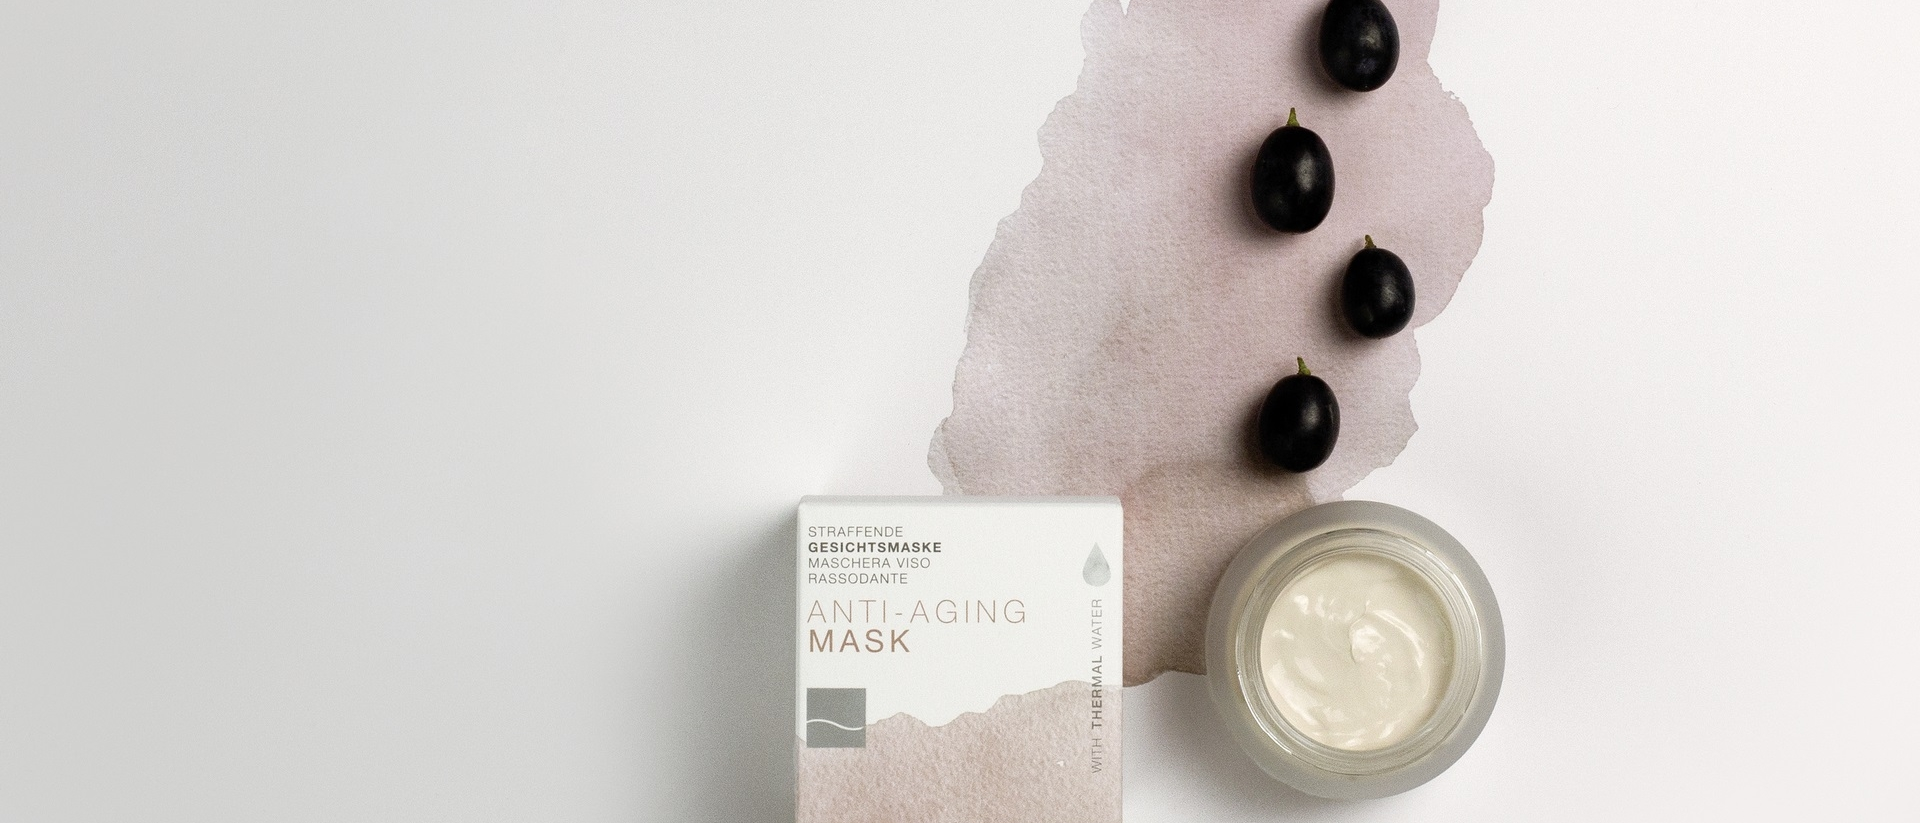 NEW! Anti-Aging Mask